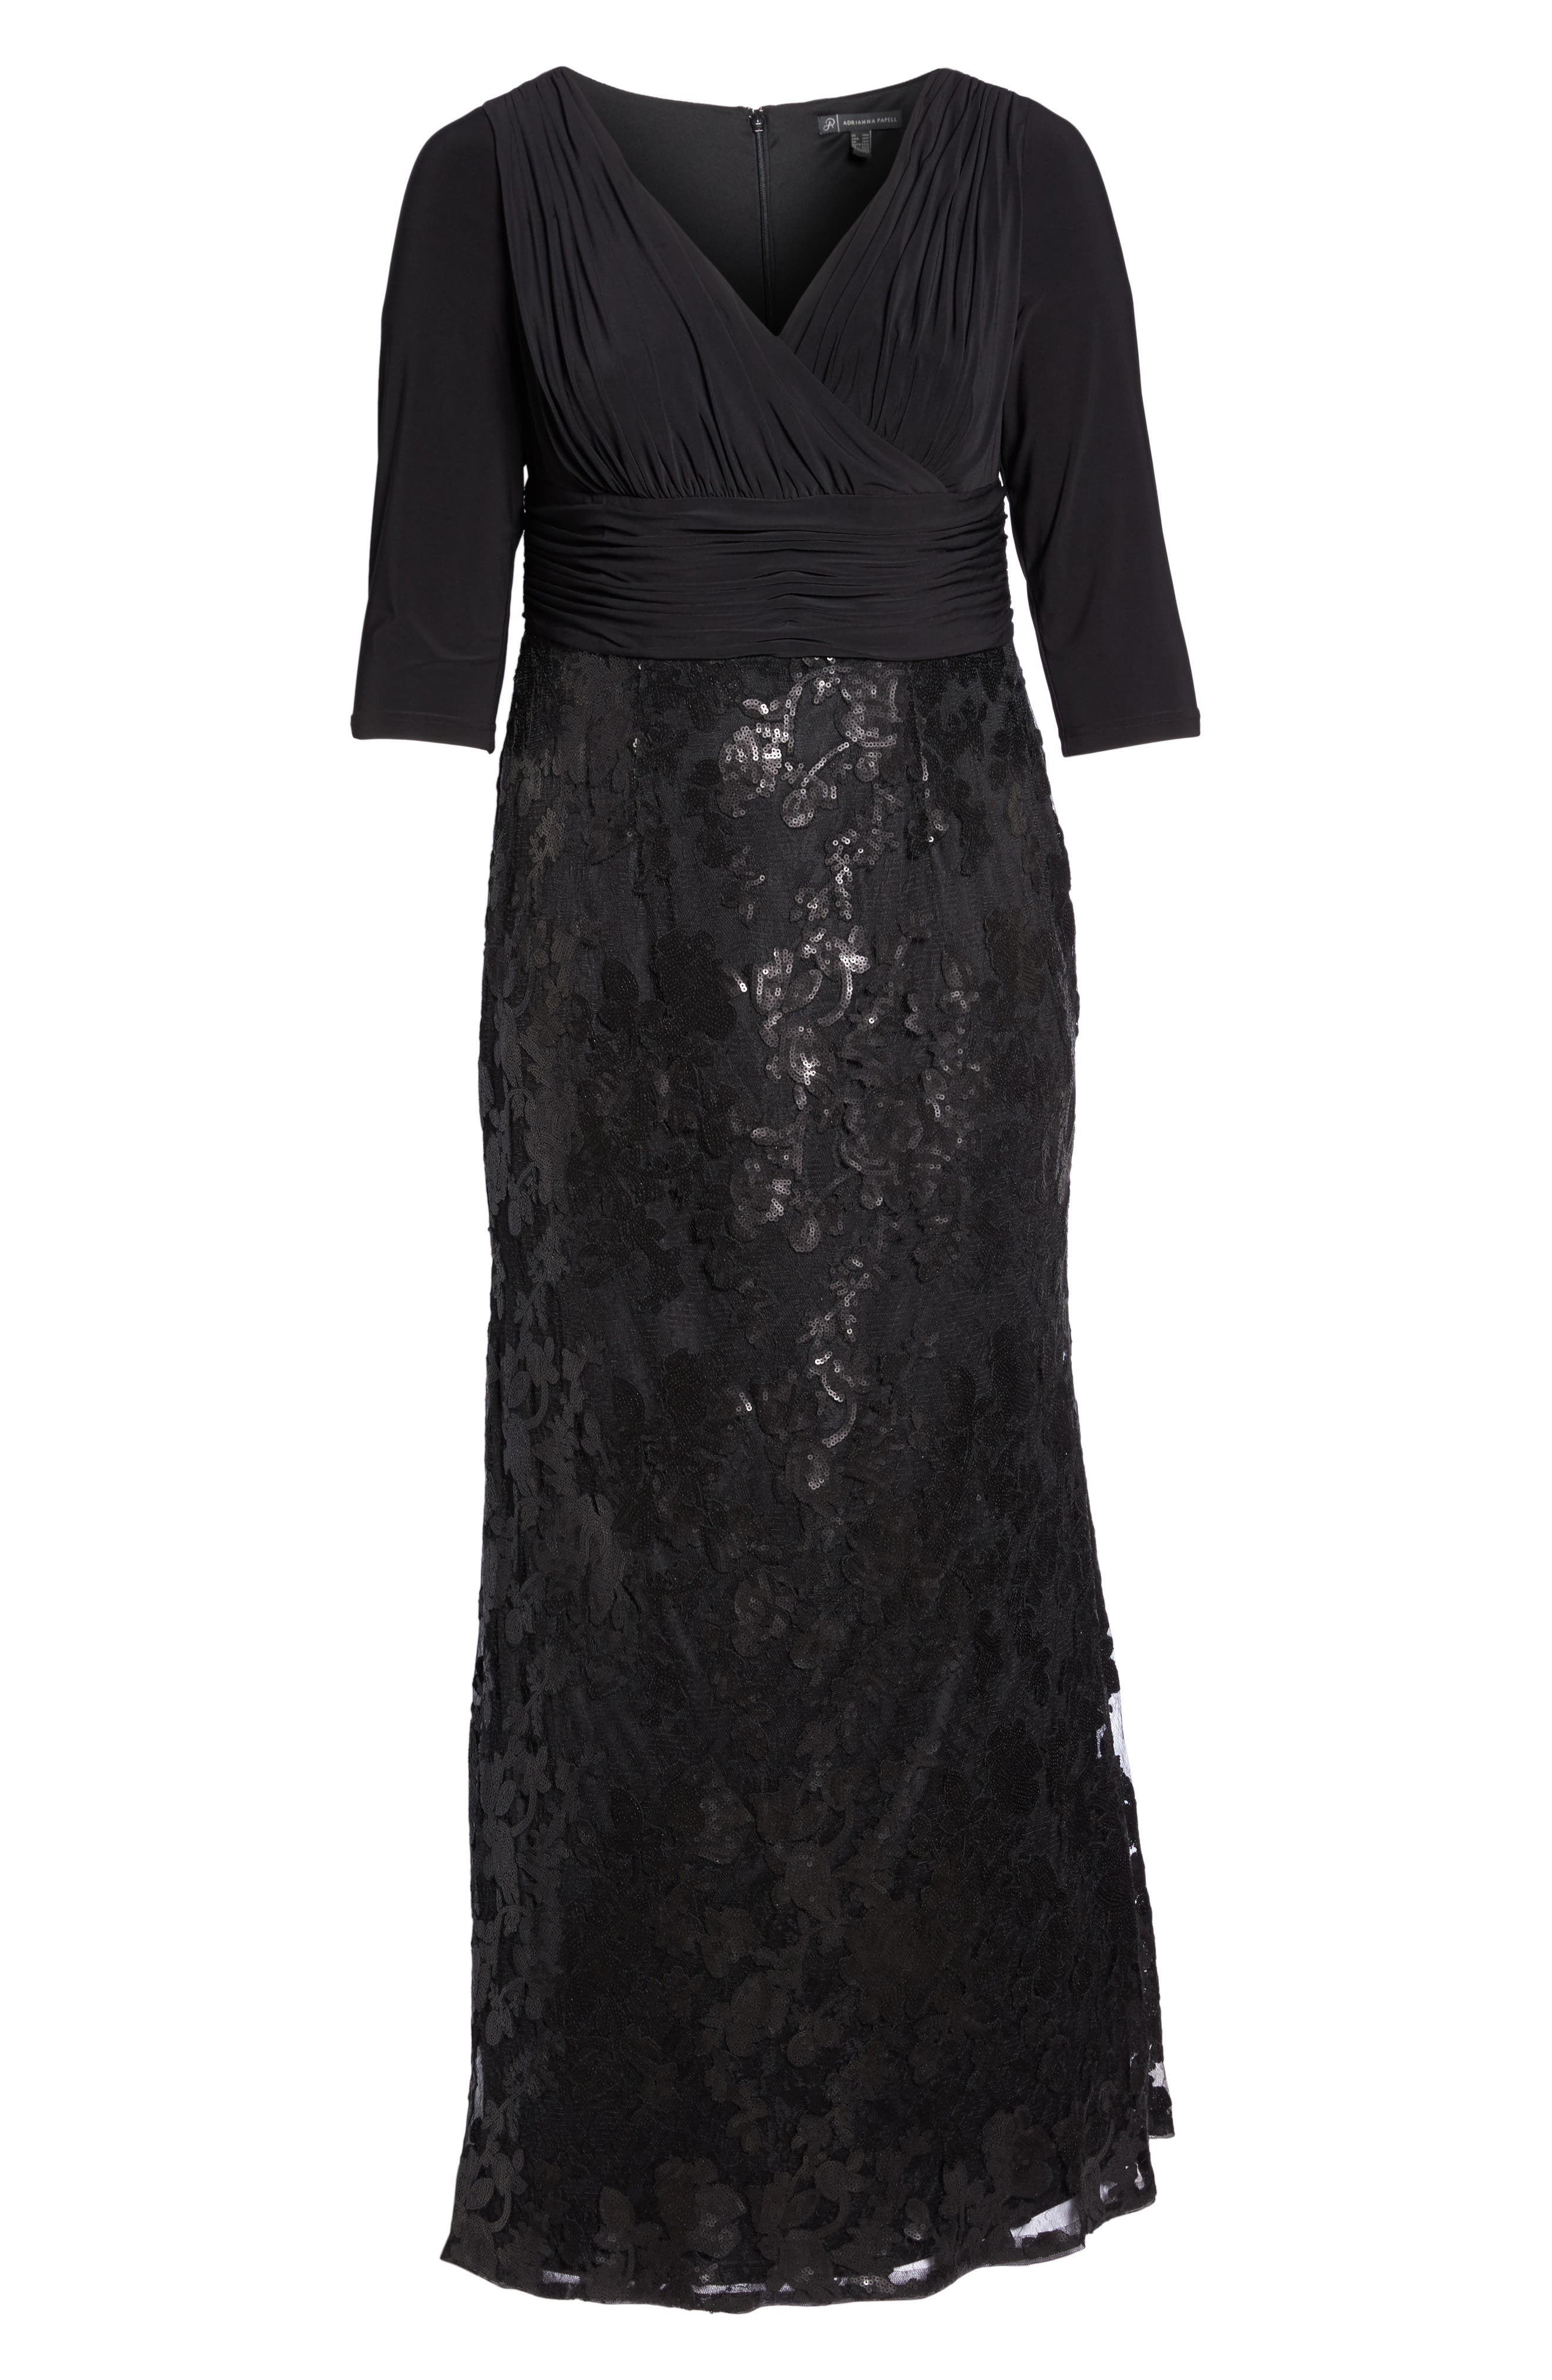 ADRIANNA PAPELL,                             Jersey & Sequin Lace Gown,                             Alternate thumbnail 6, color,                             002